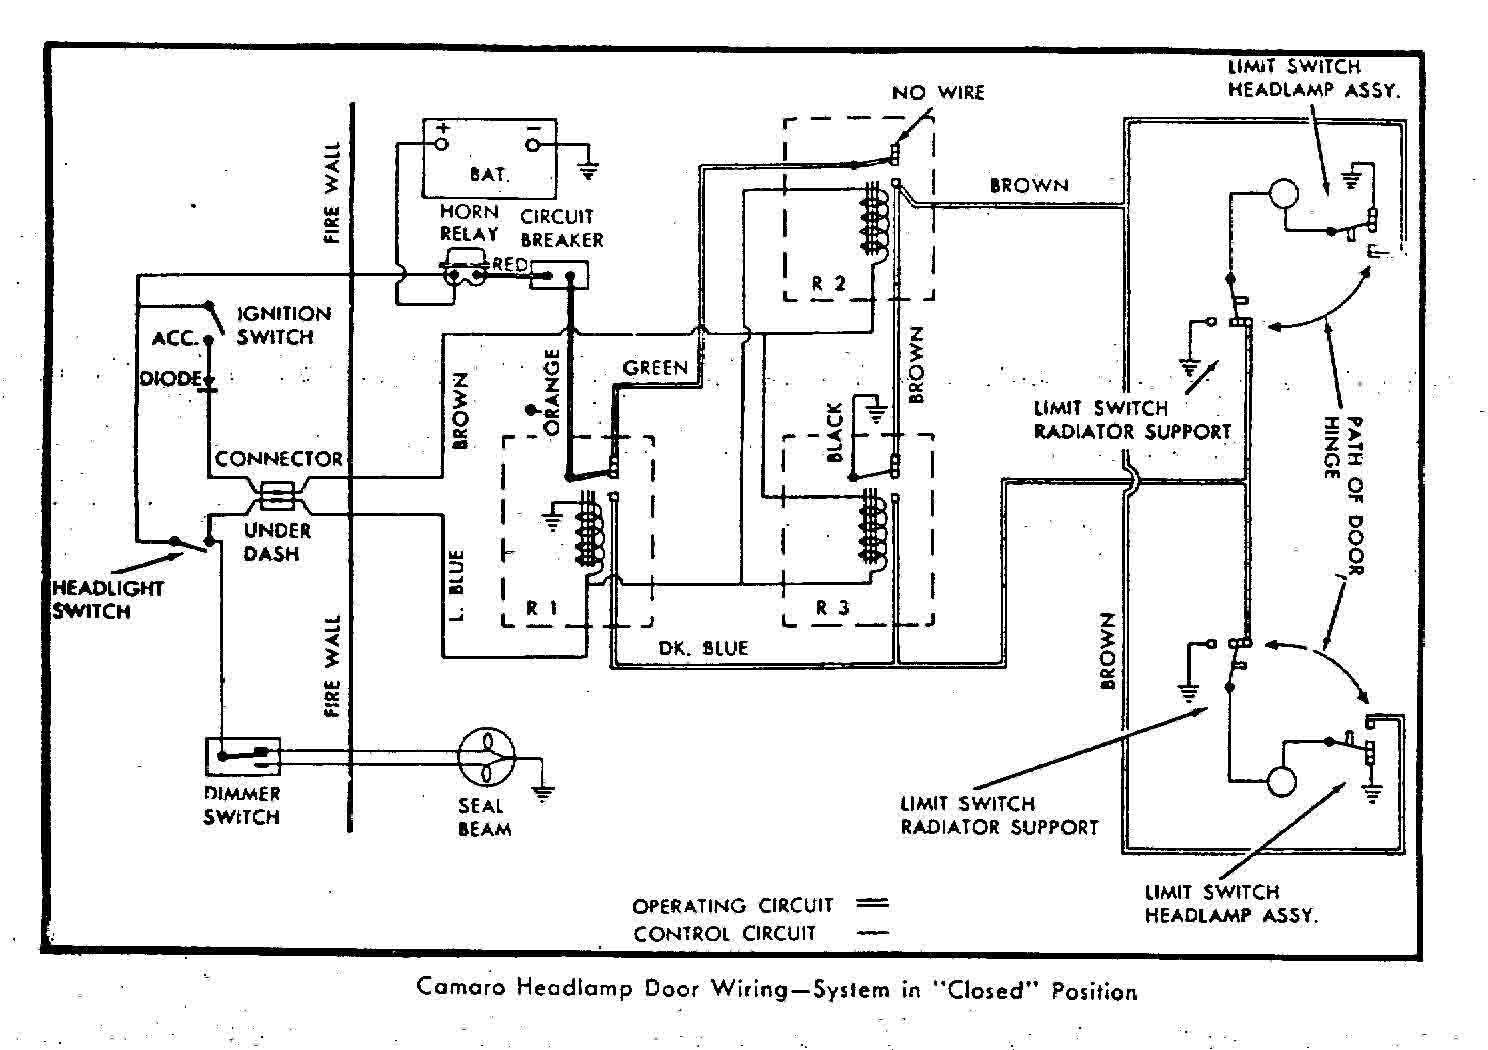 hight resolution of 67 camaro headlight wiring harness schematic 1967 camaro 1967 camaro wiring diagram pdf 67 camaro horn relay wiring diagram